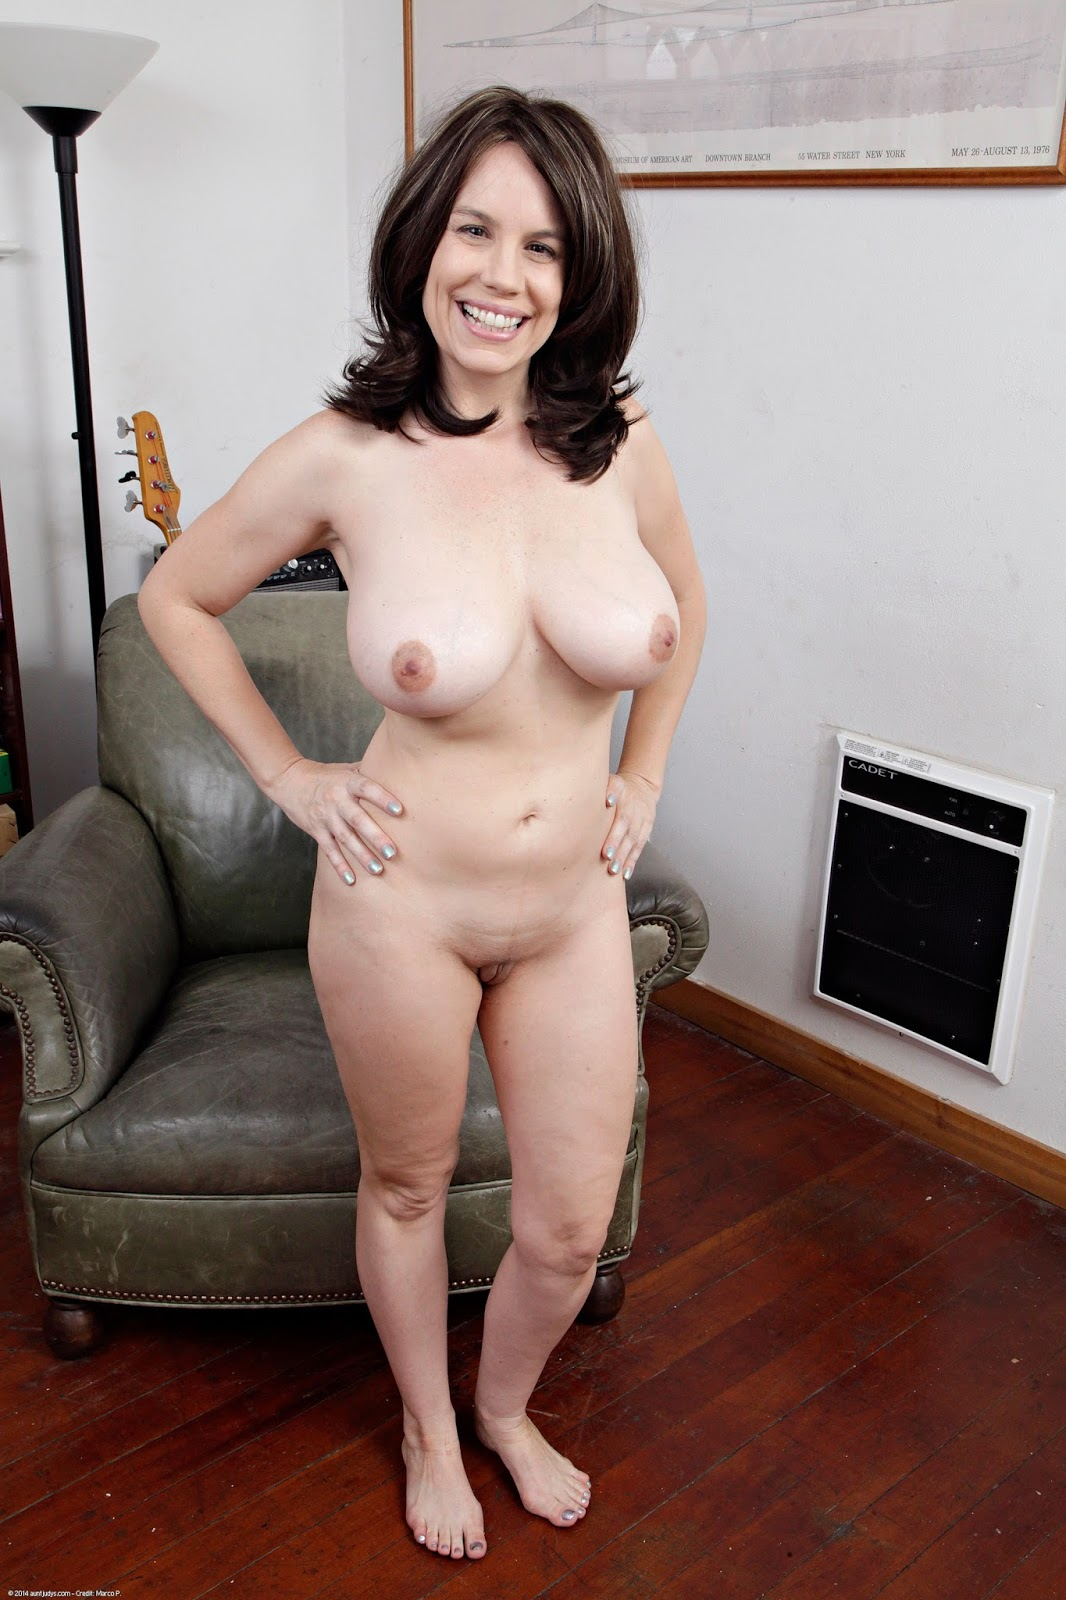 archive of old women Porn Aunty Kelly Capone